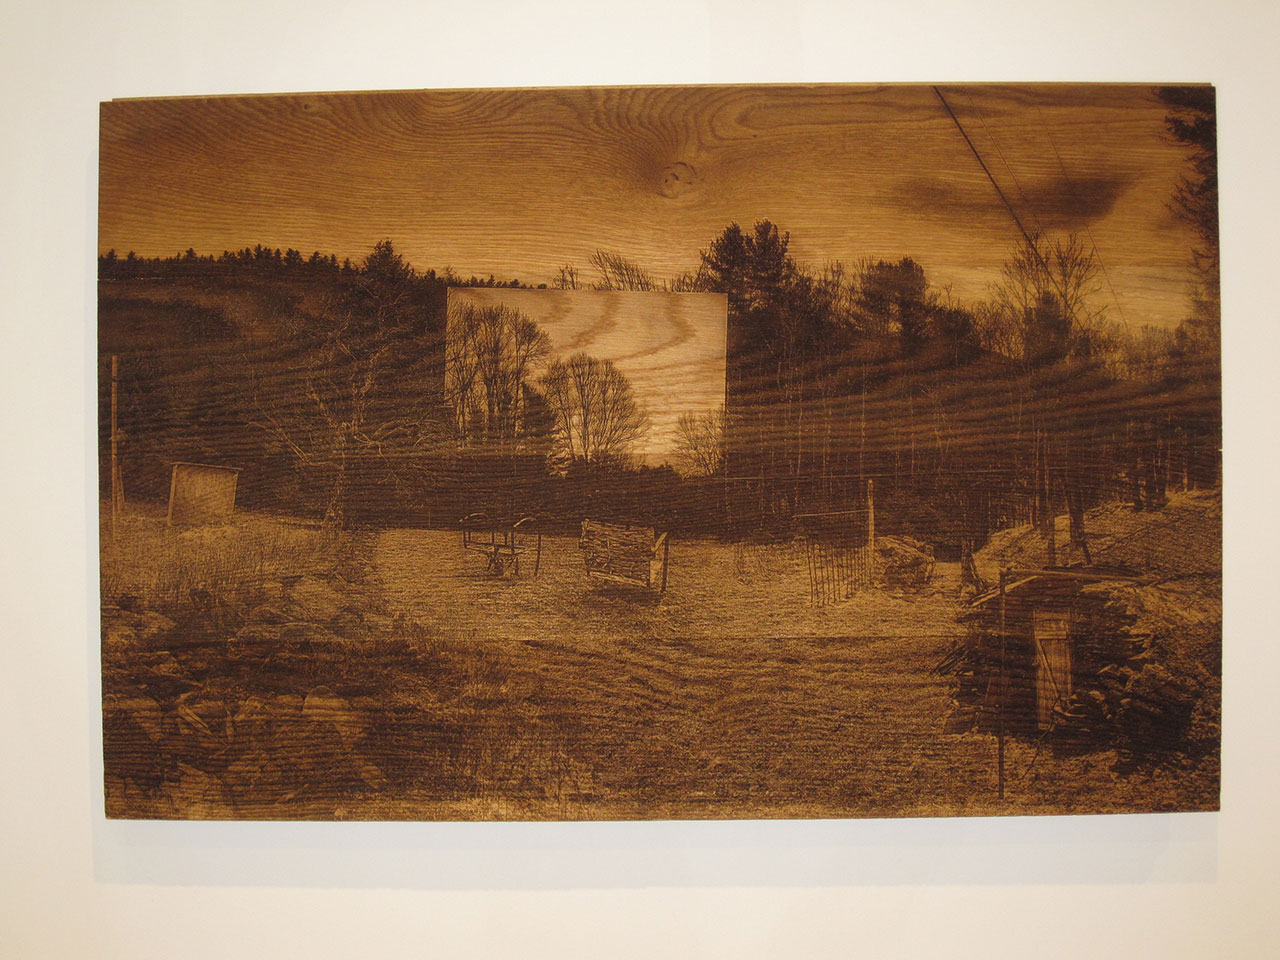 Theodoros Zafeiropoulos, The arch of an archival archive II, 2015, engraving on wood50 x 80 cm. Courtesy Nitra Gallery.